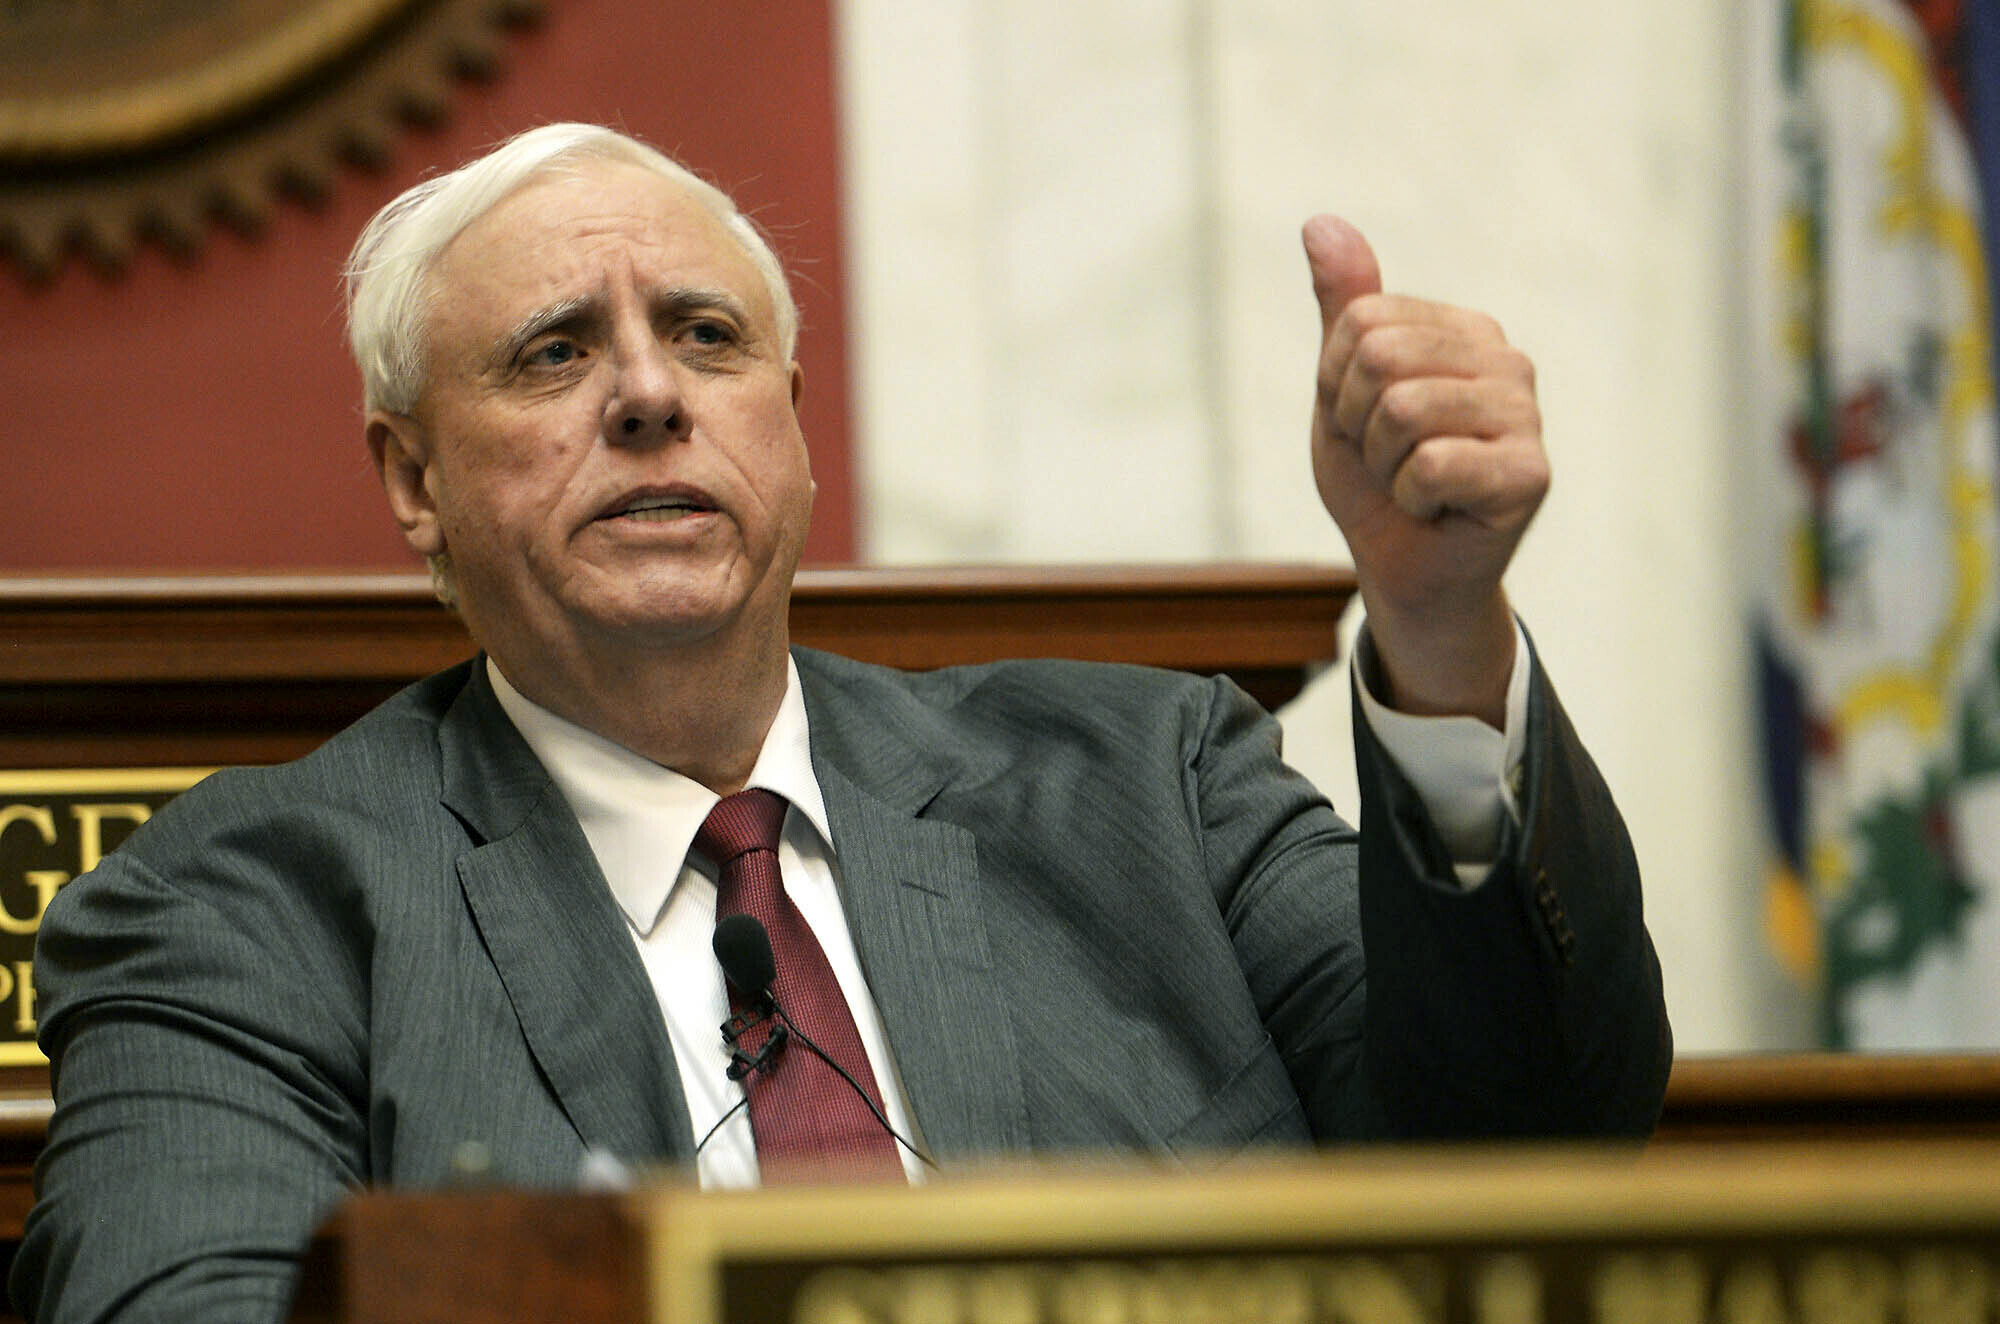 A farming business owned by the family of West Virginia's billionaire governor has received $125,000 in soybean and corn subsidies, the maximum allowed from a federal program meant to help American farmers through the U.S. trade war with China.